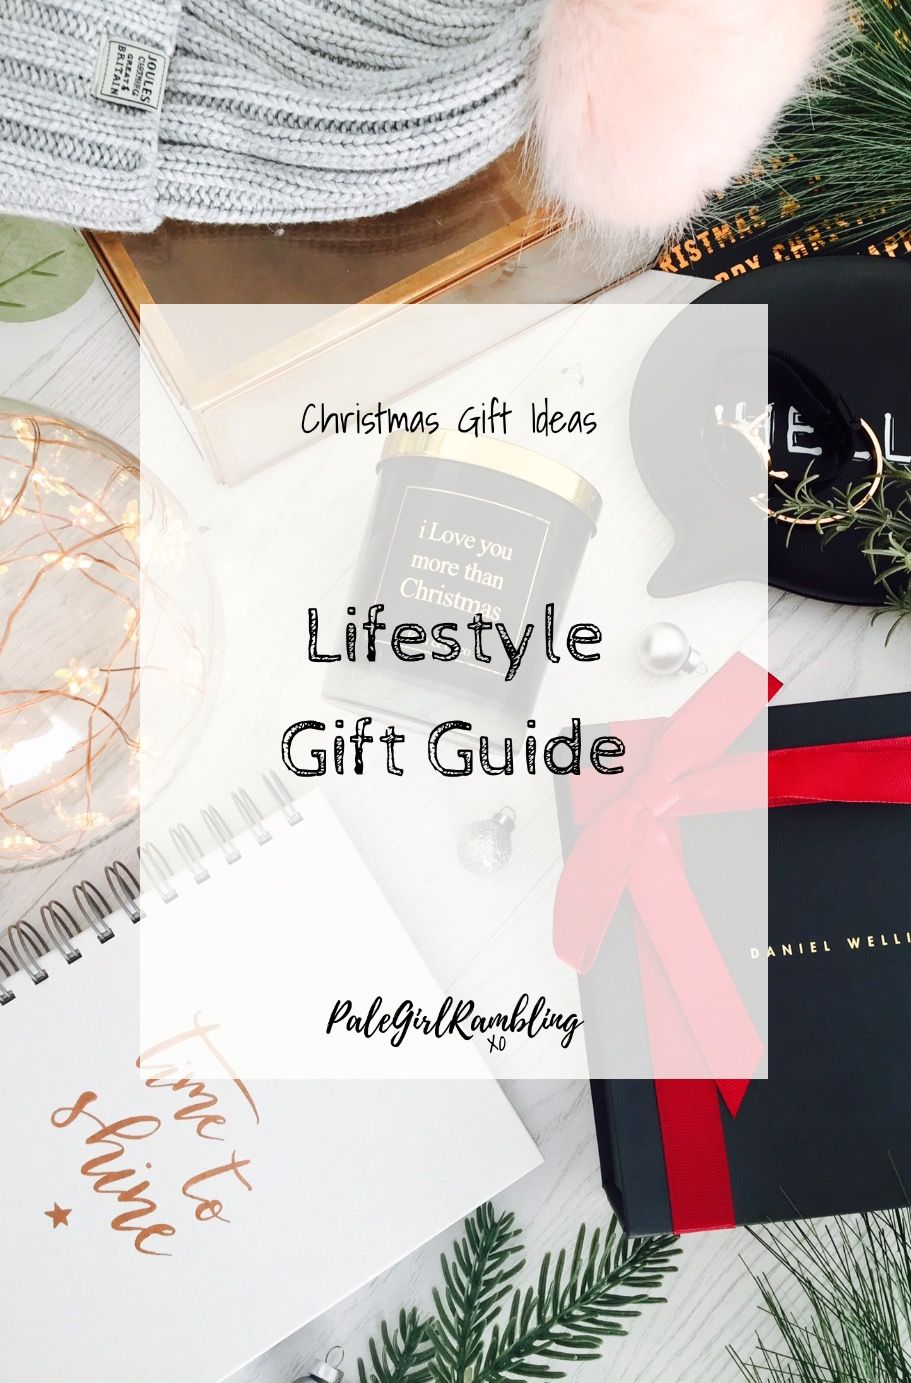 Lifestyle Gift Guide Gift Guide Gifts Christmas Gifts